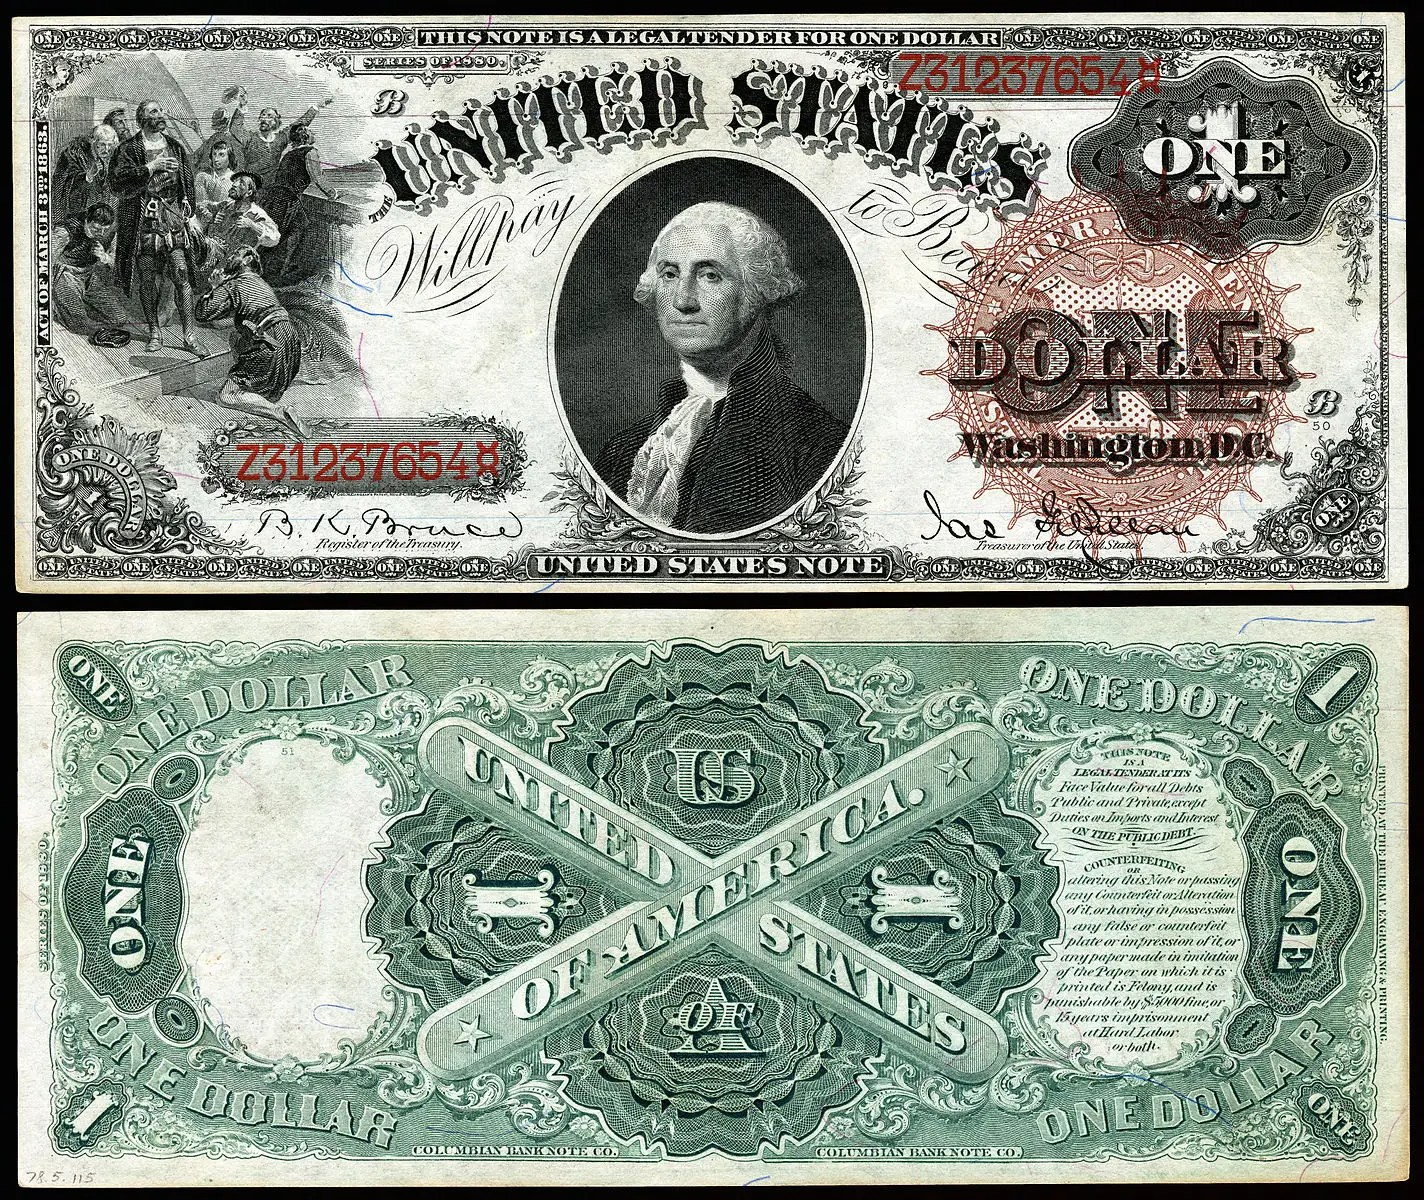 Face On The First Us Dollar Bill